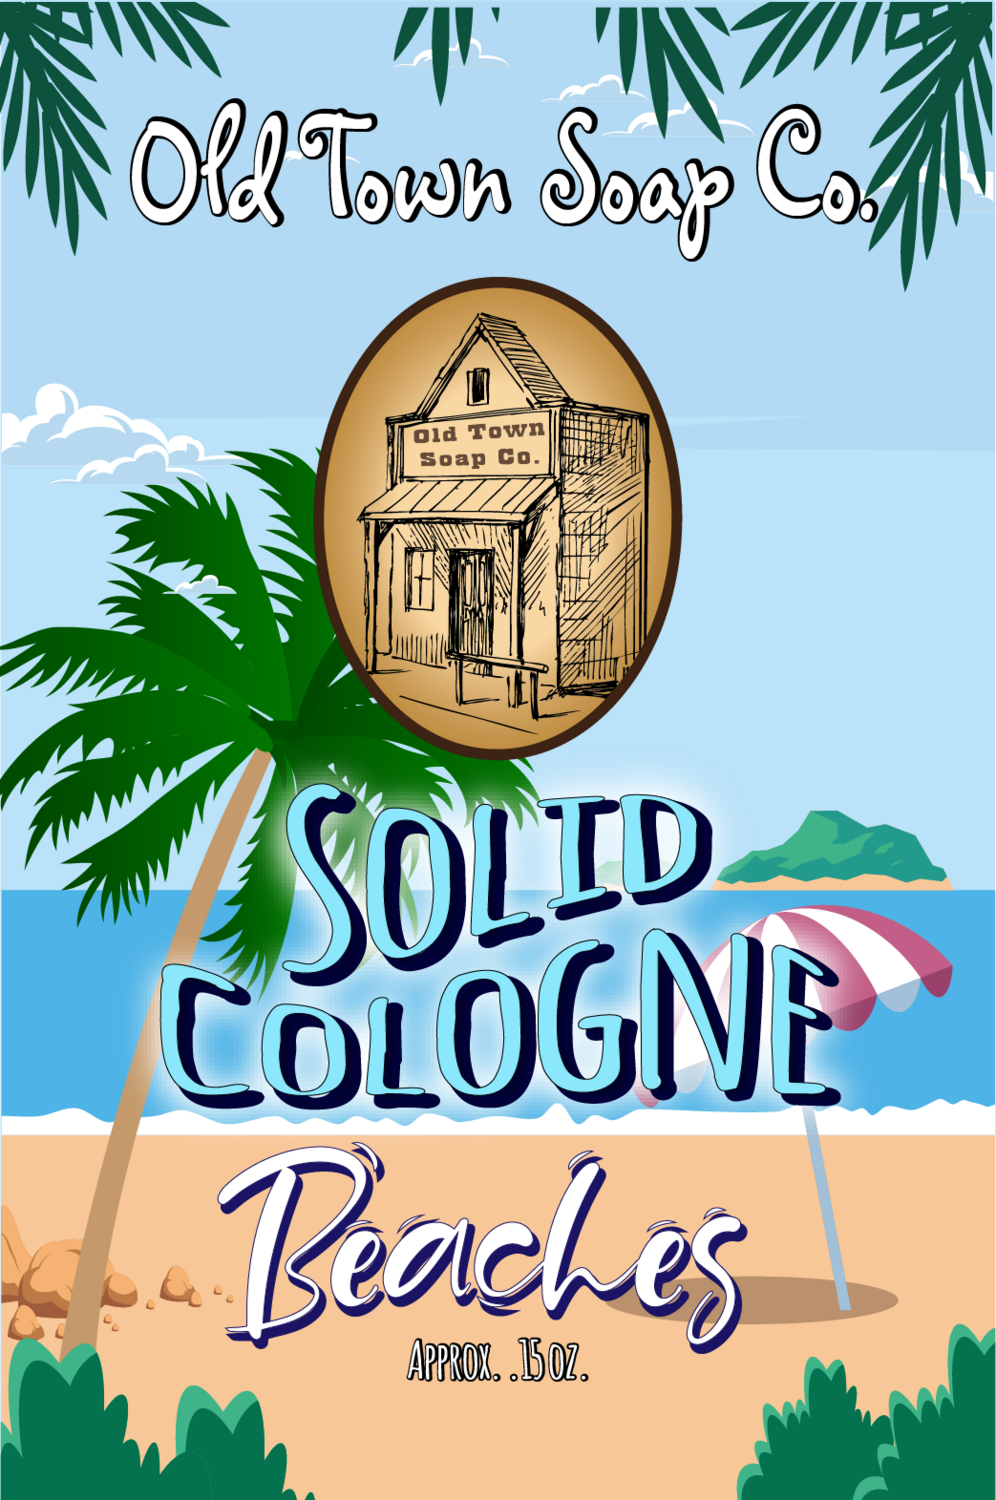 Beaches -Solid Cologne